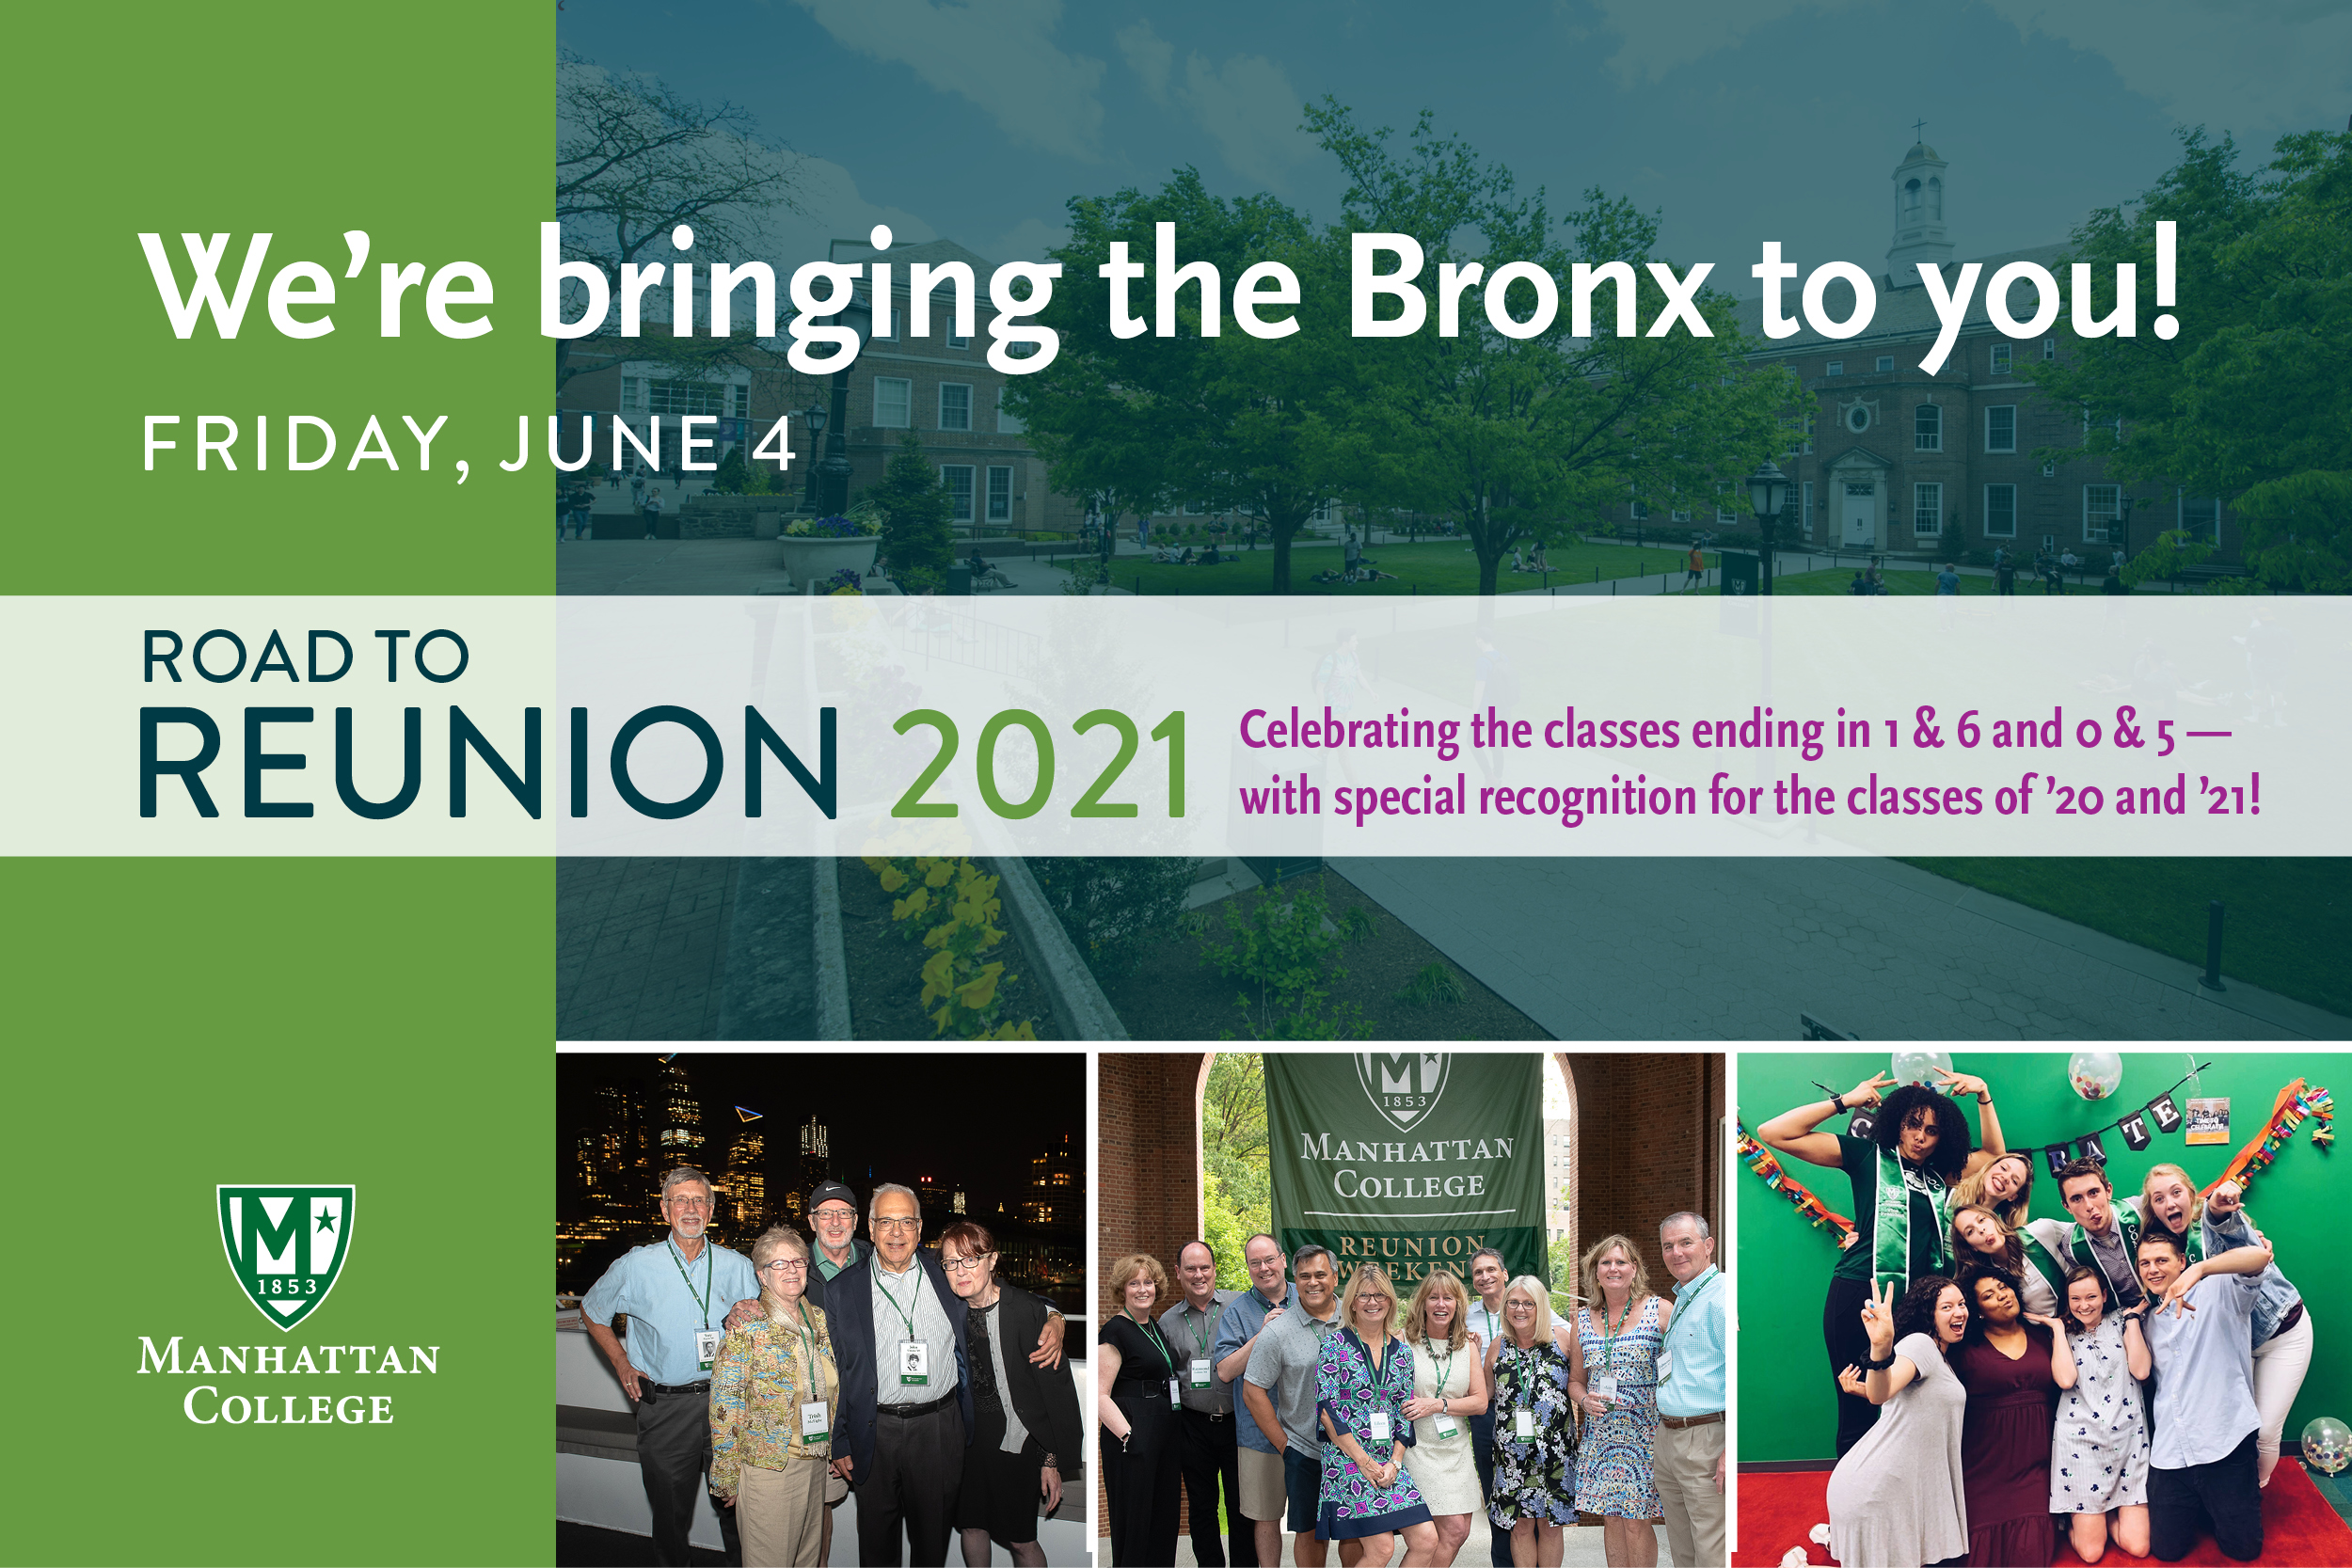 We're Bringing the Bronx to You! Friday, June 4 | Road to Reunion 2021 | Celebrating the classes ending in 1 & 6 and 0 & 5! With special recognition for the classes of '20 and '21! | Manhattan College